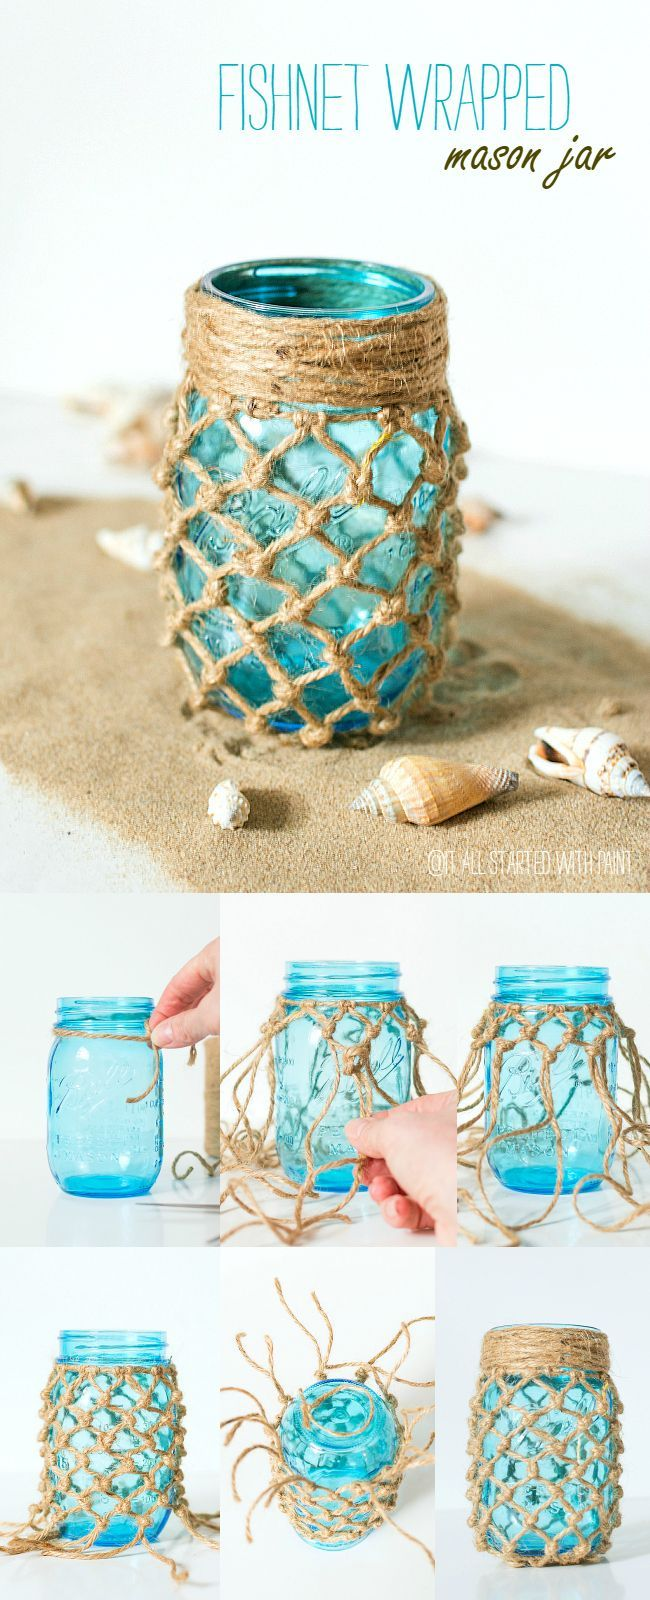 http://www.cadecga.com/category/Mason-Jars/ Mason Jar Crafts: Fishnet Wrapped Mason Tutorial using Vintage Blue Mason Jar